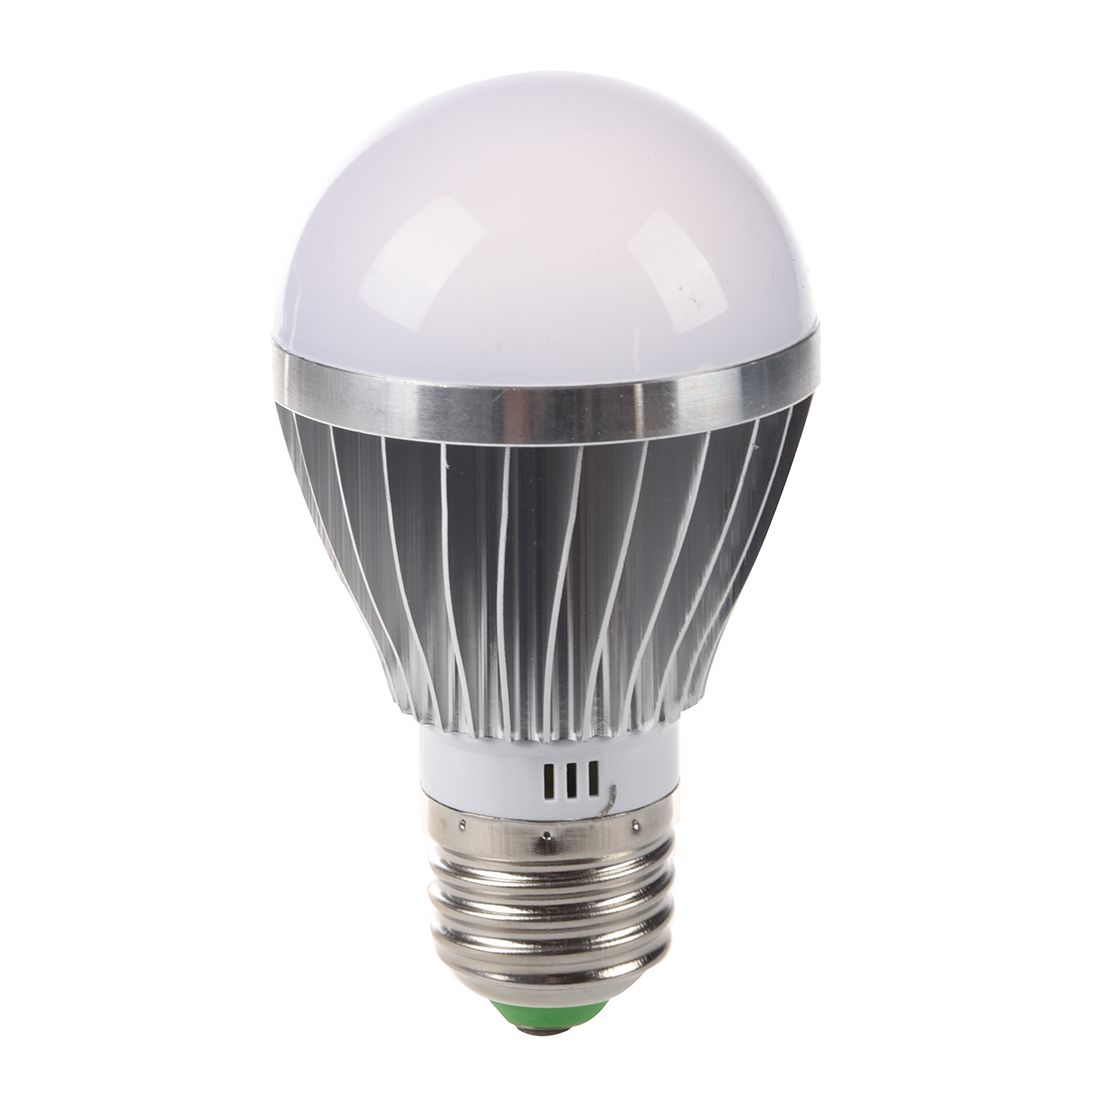 Top Quality E27 5W 12V High-power White Light Bulb